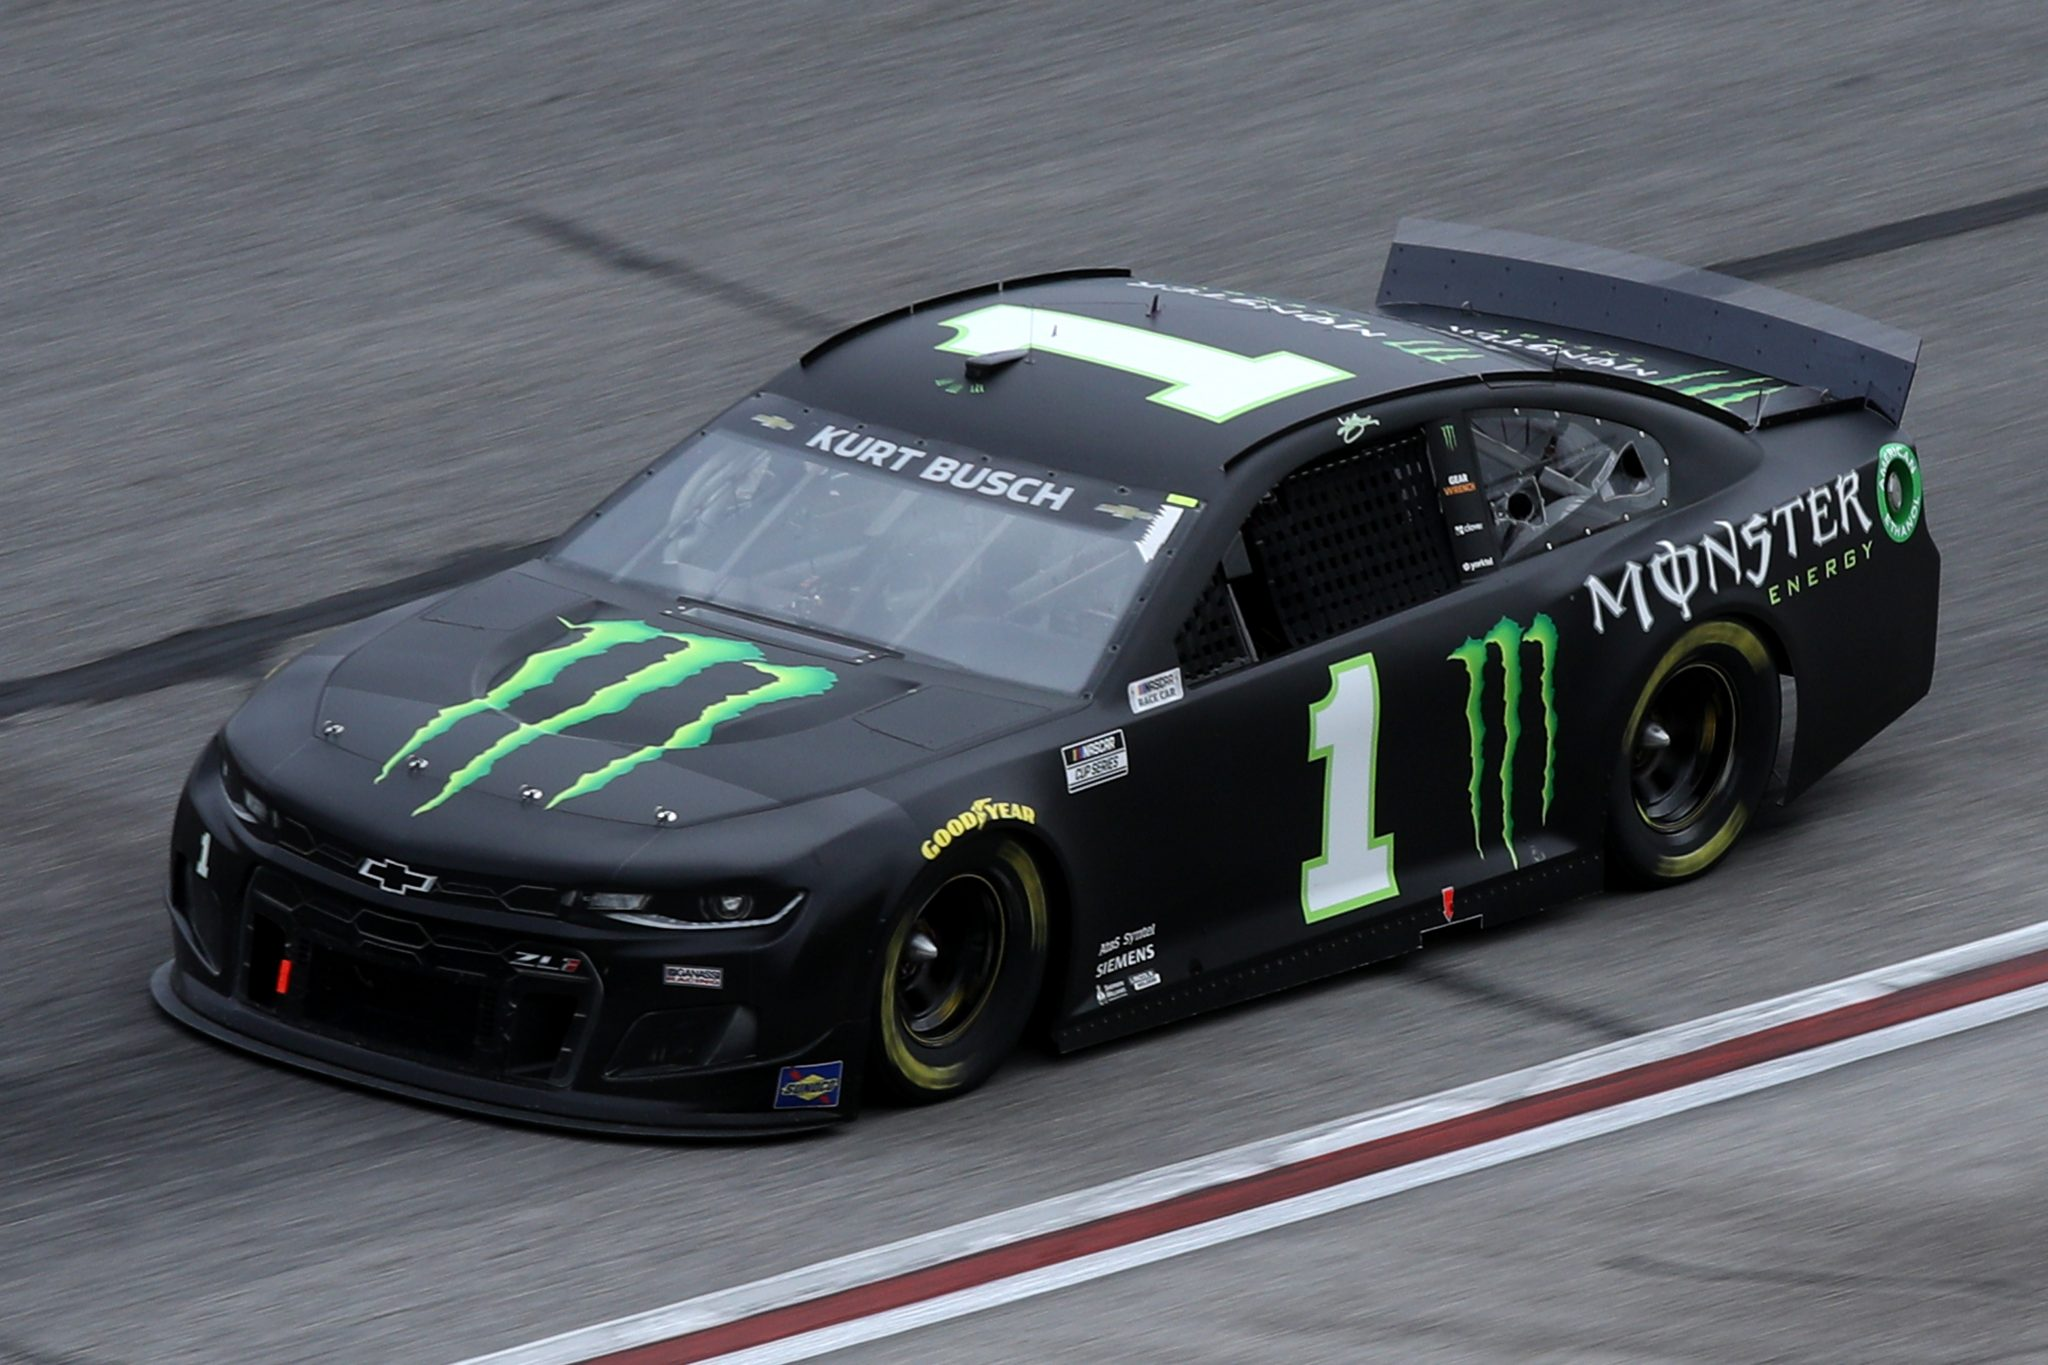 HAMPTON, GEORGIA - MARCH 21: Kurt Busch, driver of the #1 Monster Energy Chevrolet, drives during the NASCAR Cup Series Folds of Honor QuikTrip 500 at Atlanta Motor Speedway on March 21, 2021 in Hampton, Georgia. (Photo by Sean Gardner/Getty Images) | Getty Images